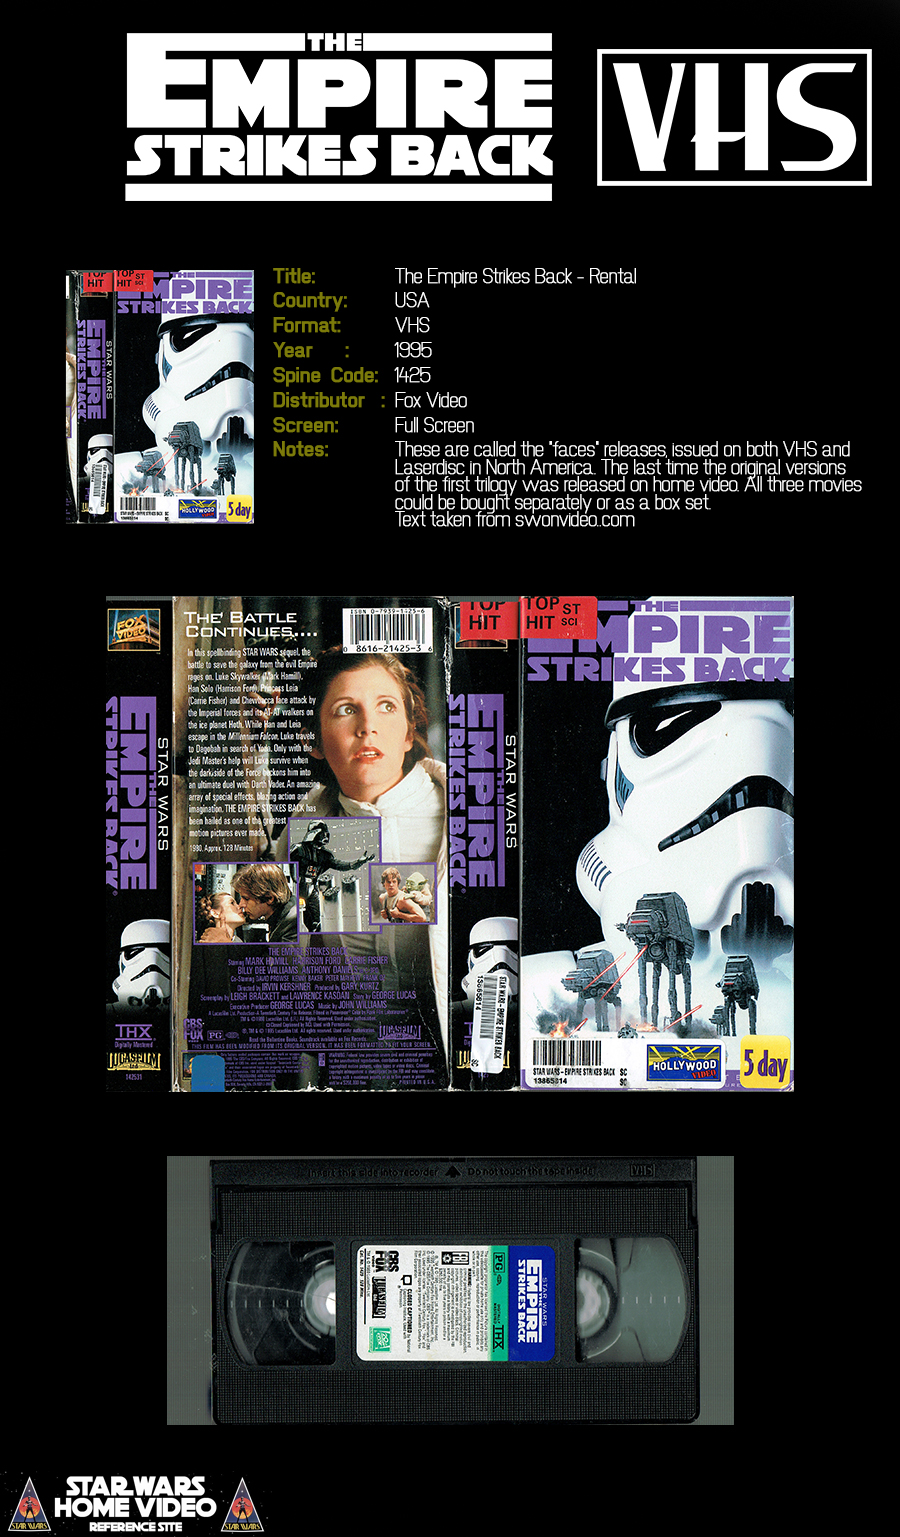 Star Wars Home Video The Empire Strikes Back Usa Vhs 1995 Rental